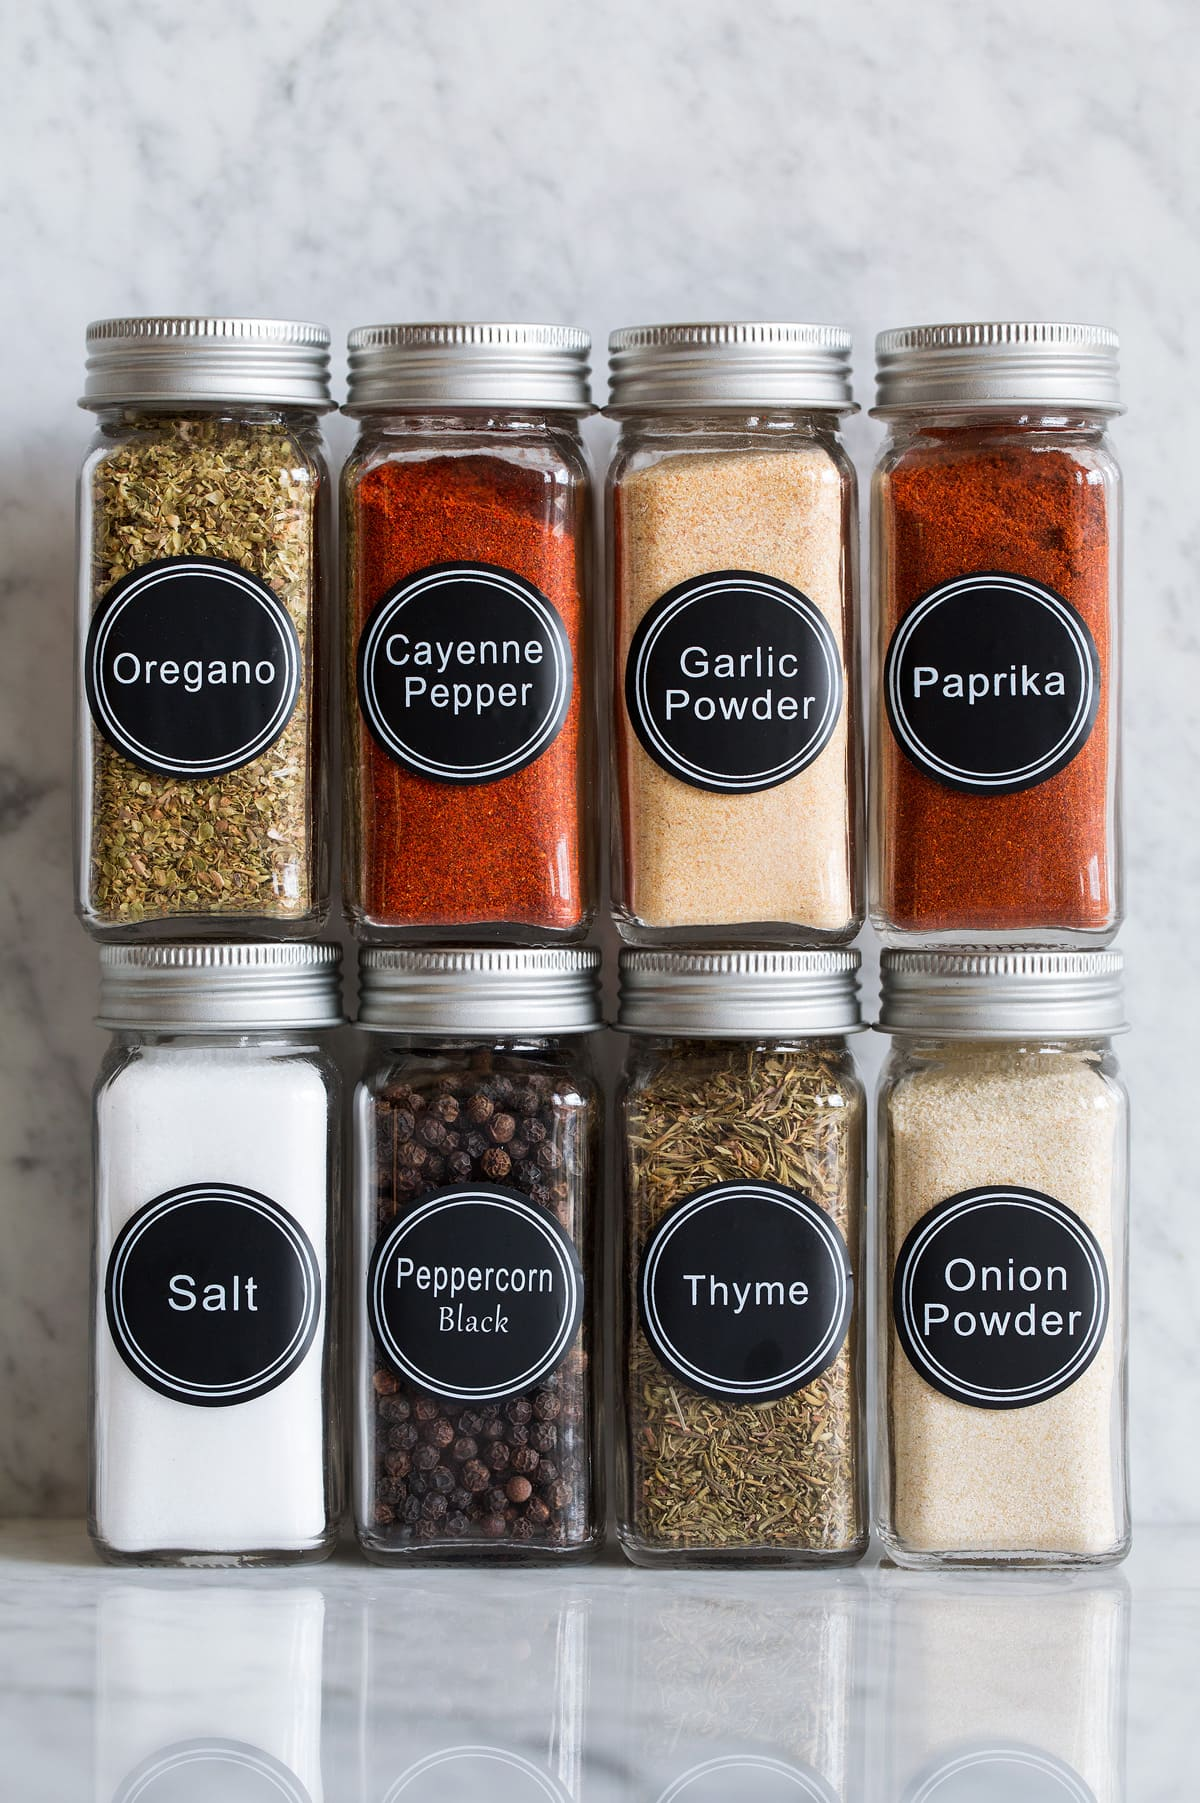 Photo: Eight glass jars of spices that are used to make cajun seasoning shown on a marble surface.